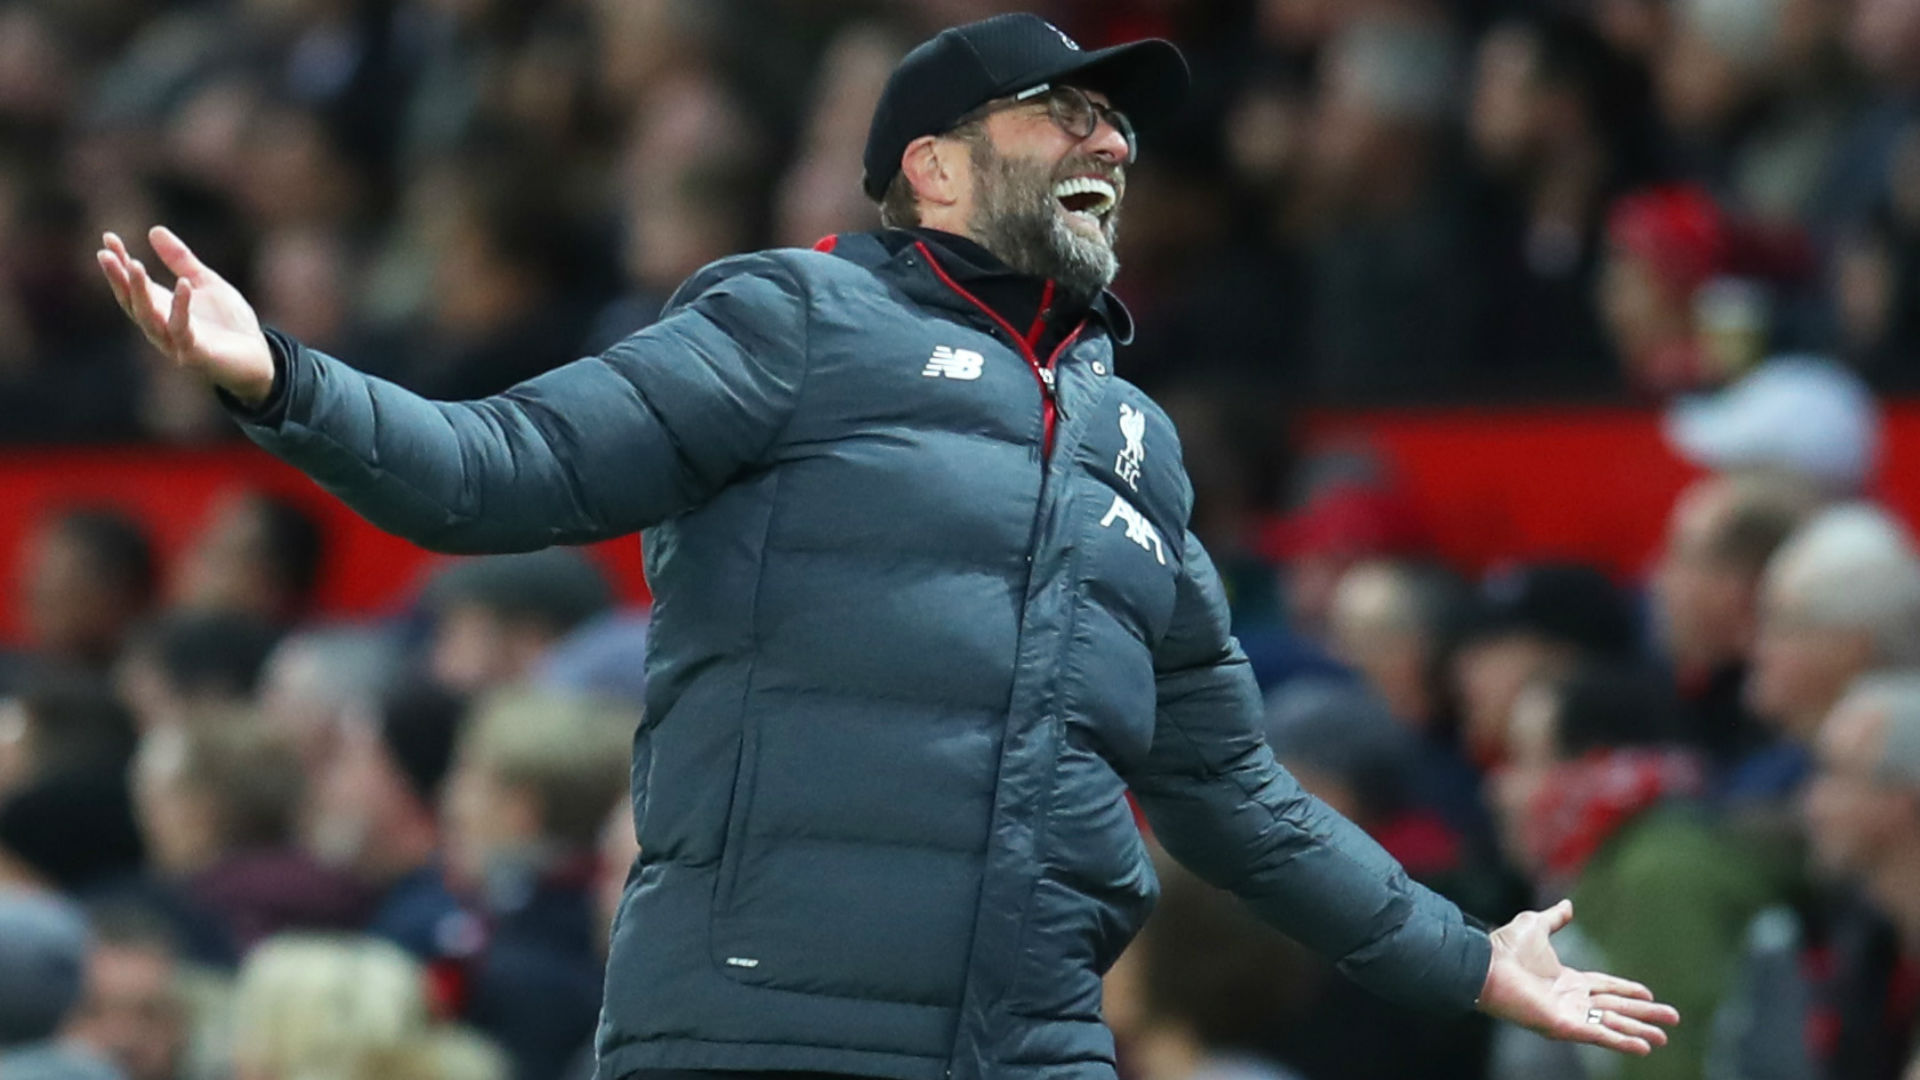 It's a fact, they just defend against us – Klopp irked by Man United setup